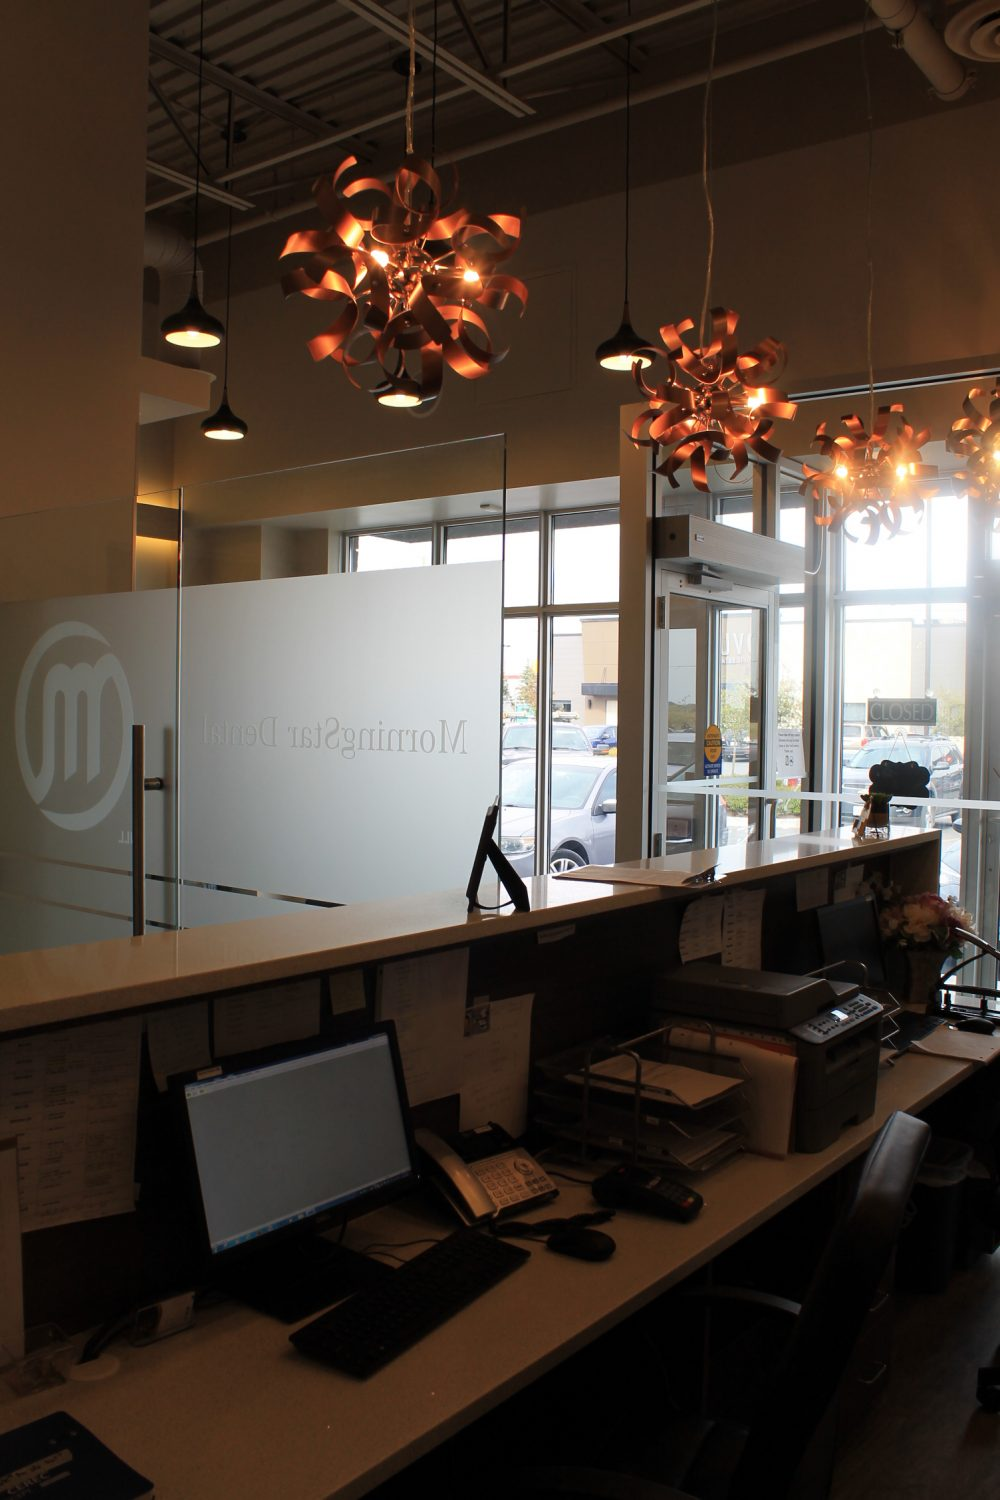 Front Desk - Morningstar Dental